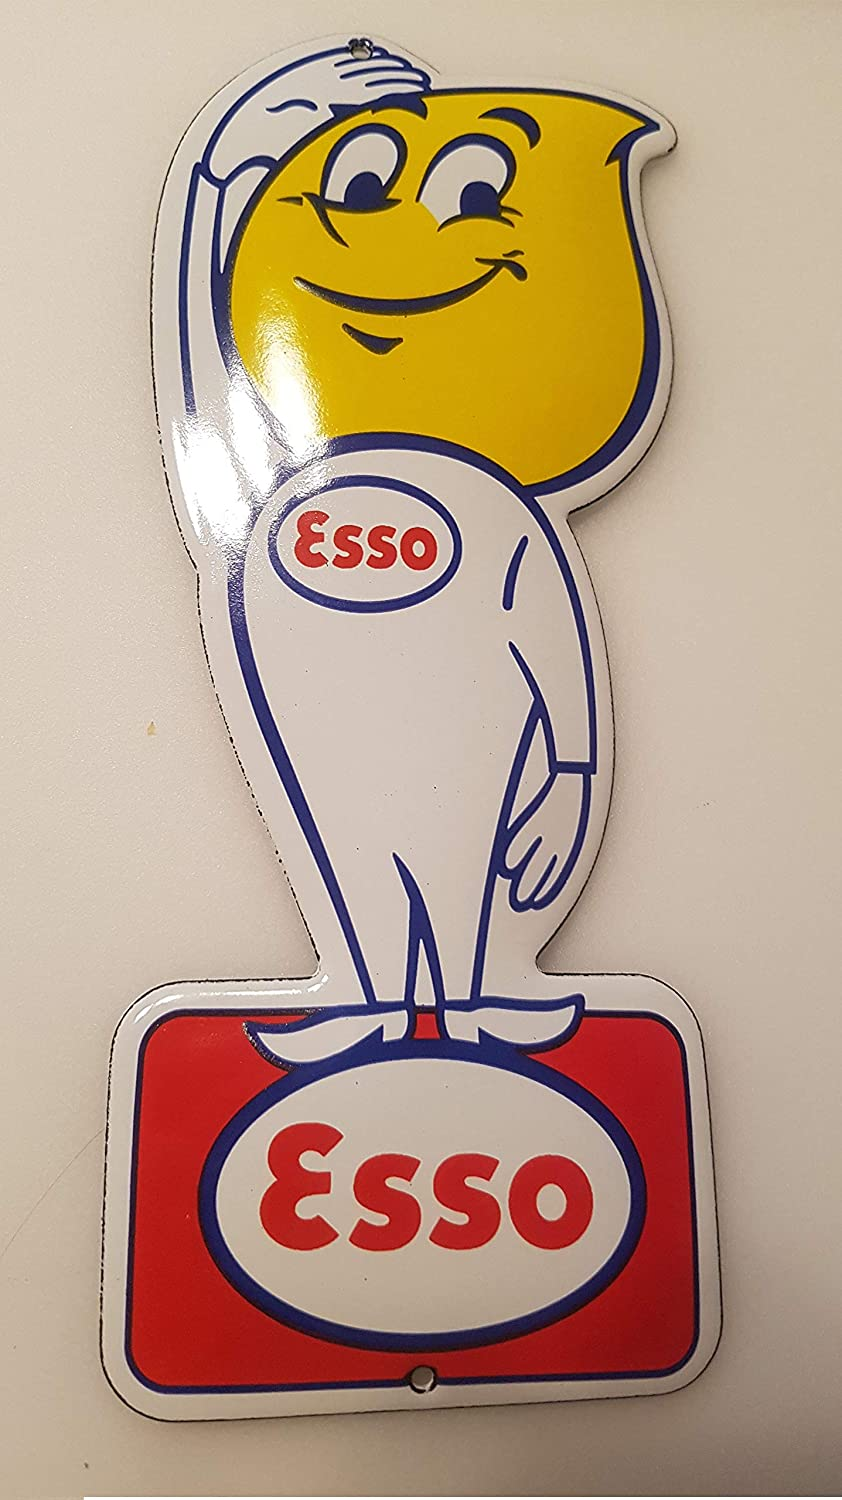 EMAILLE Enamel Door Sign ESSO Drop BOY Shield Glossary. Porcelain Enamel! EMAILLE Size = 4x8 INCH / 10X20cm! + Weight = 0,22lb / 100grams!